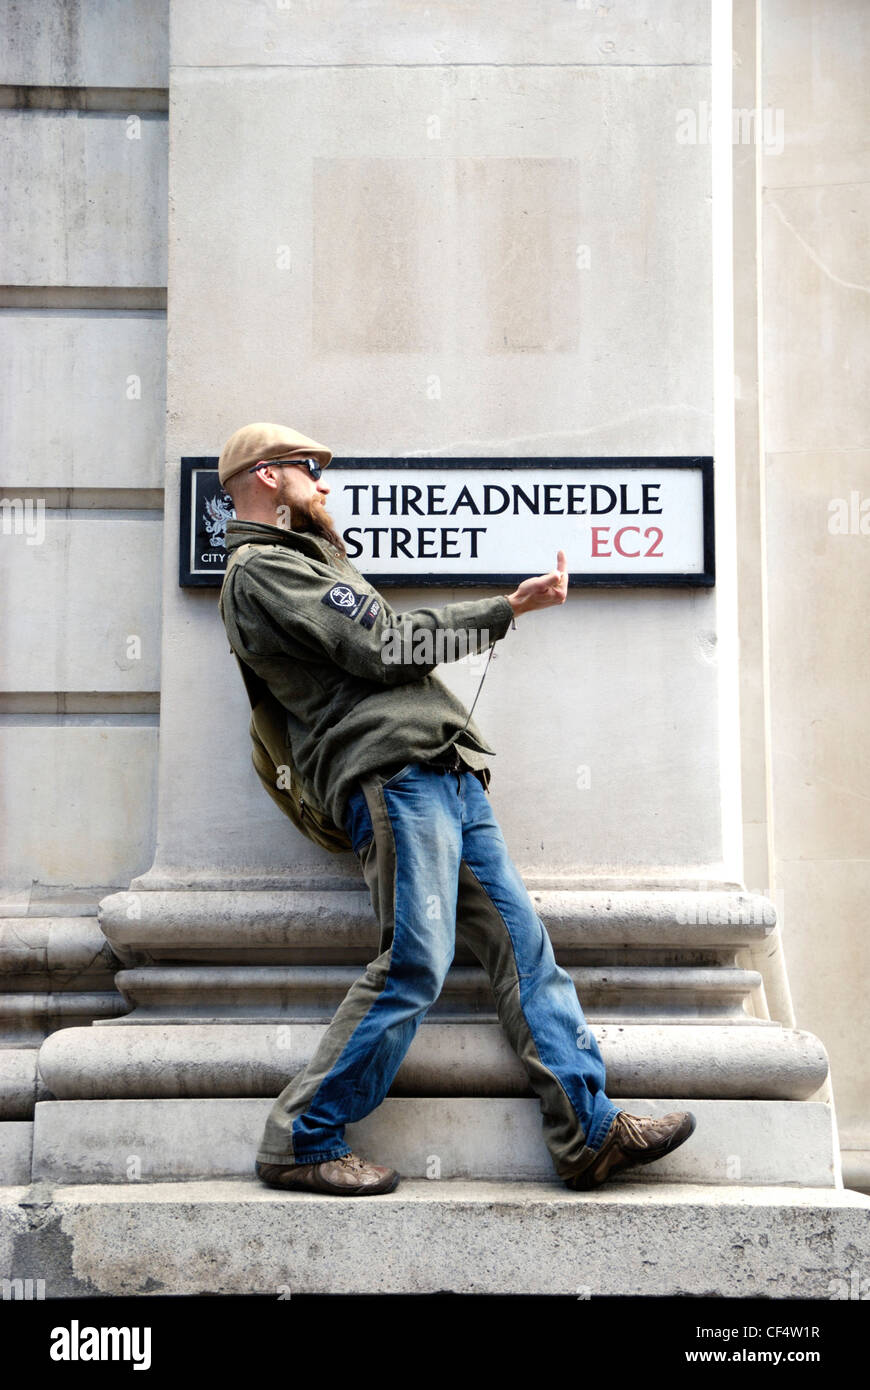 A young male protestor making a rude gesture in front of a Threadneedle Street sign during the G20 demonstrations - Stock Image